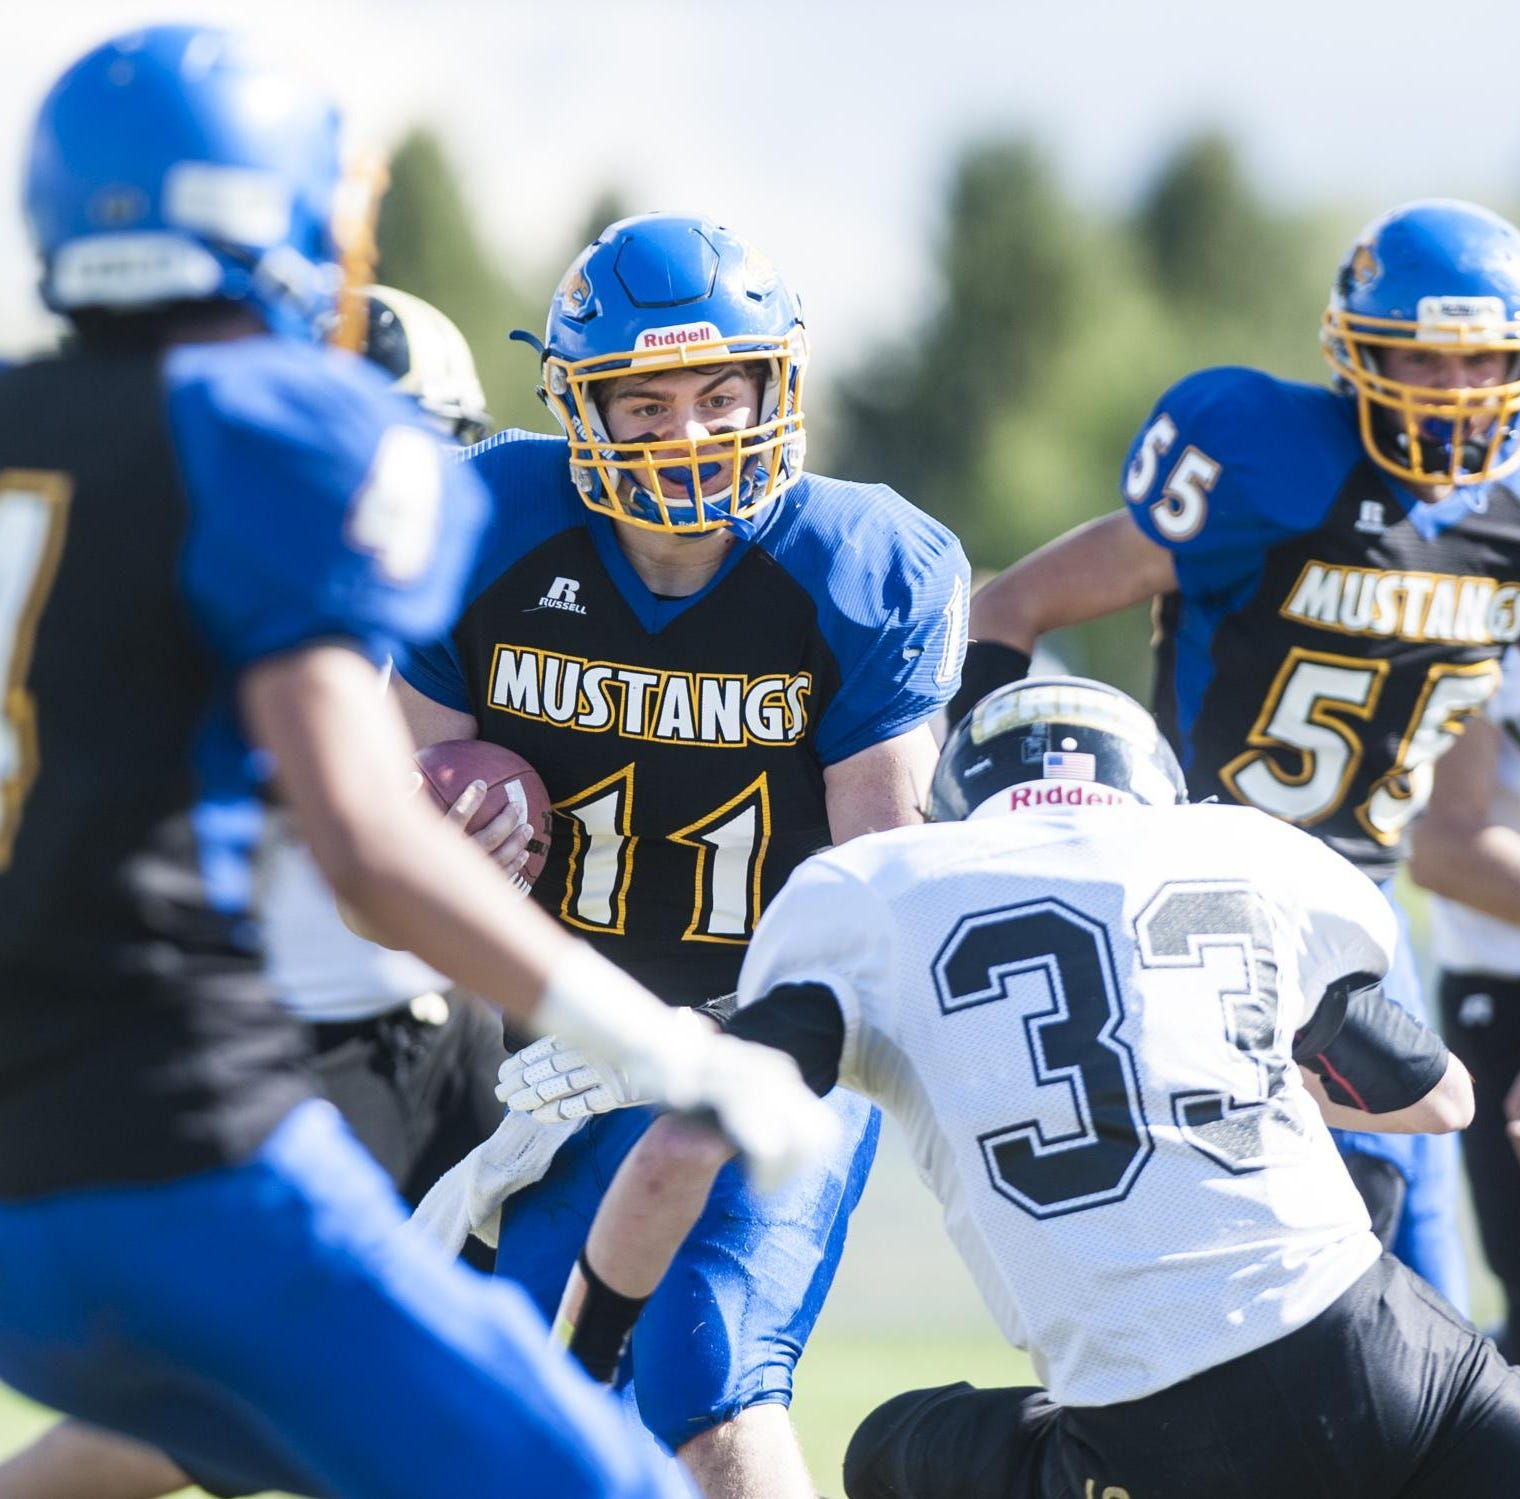 Mustangs' playoff game first at Stadium since early '70s